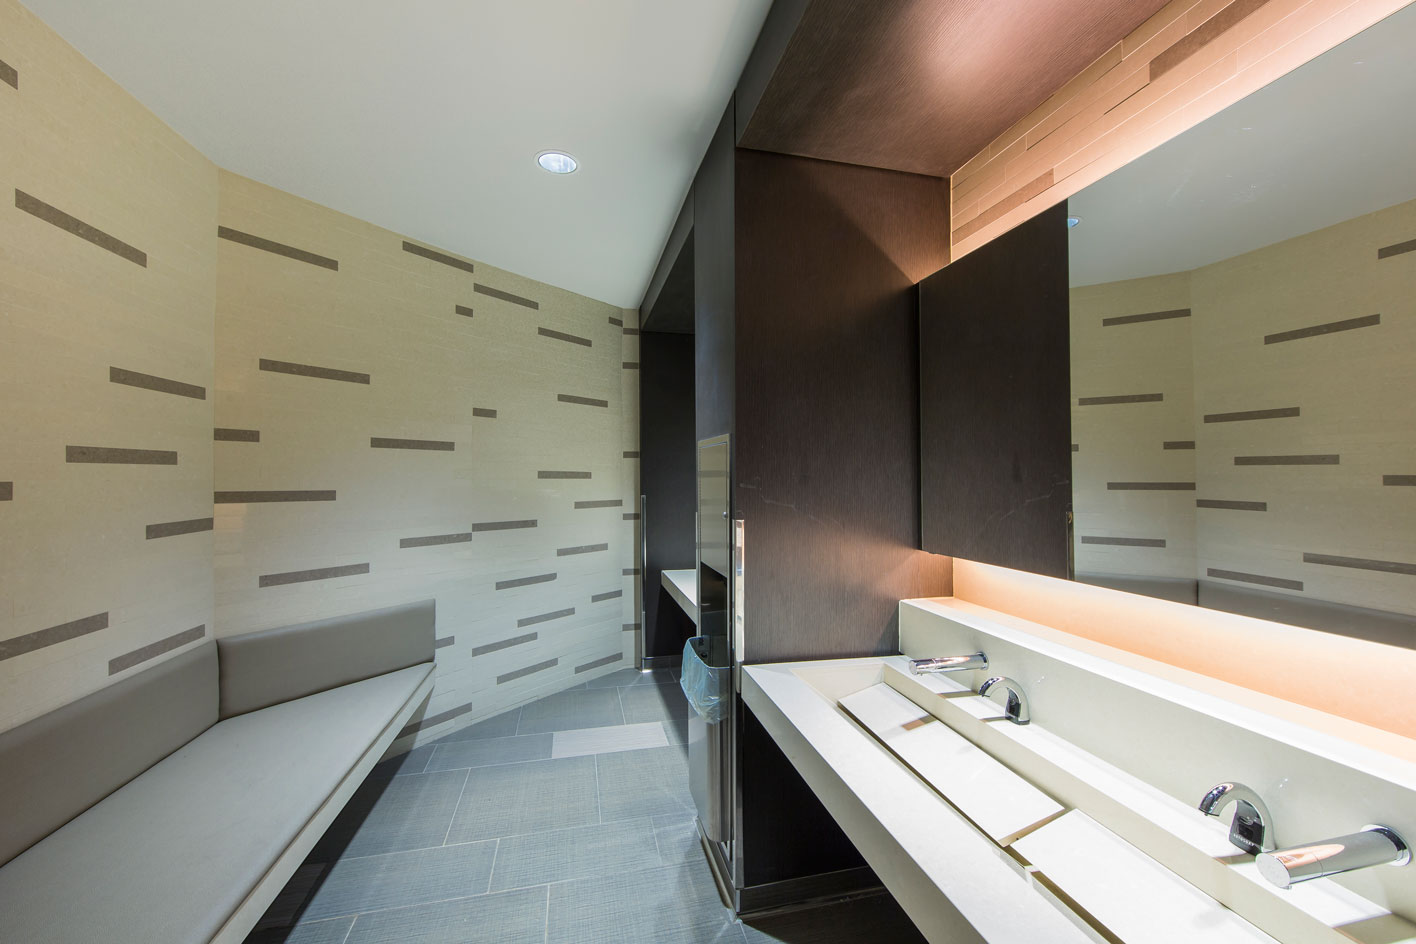 Direct Energy Centre Washrooms Retrofit